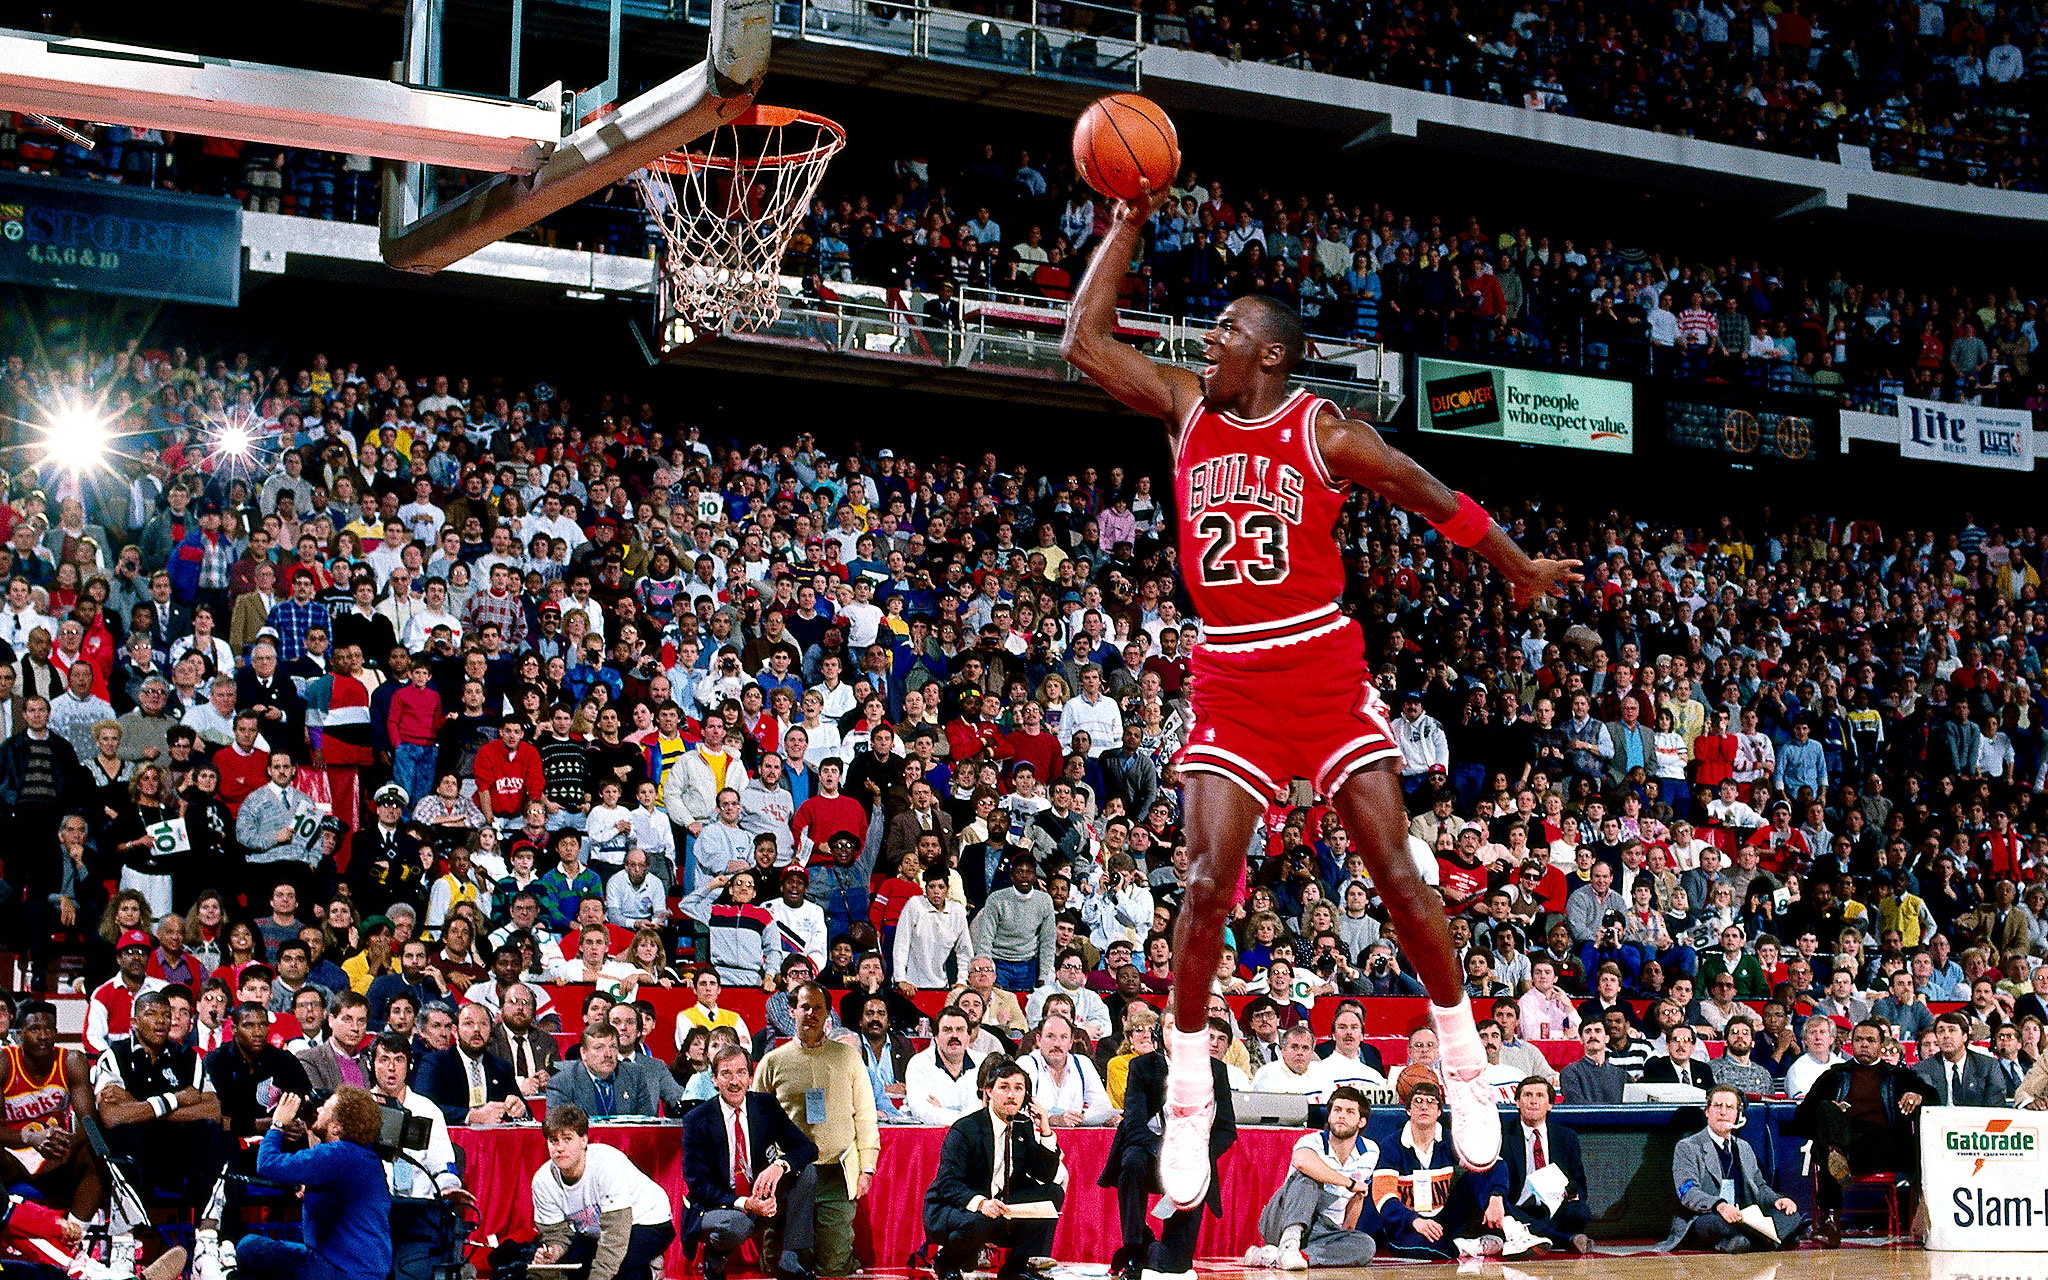 WHAT AN INSPIRATION! WATCH 'MICHAEL JORDAN'S' CAREER HIGHLIGHTS FOR HIS INDUCTION INTO THE NBA HALL OF FAME! (VIDEO)